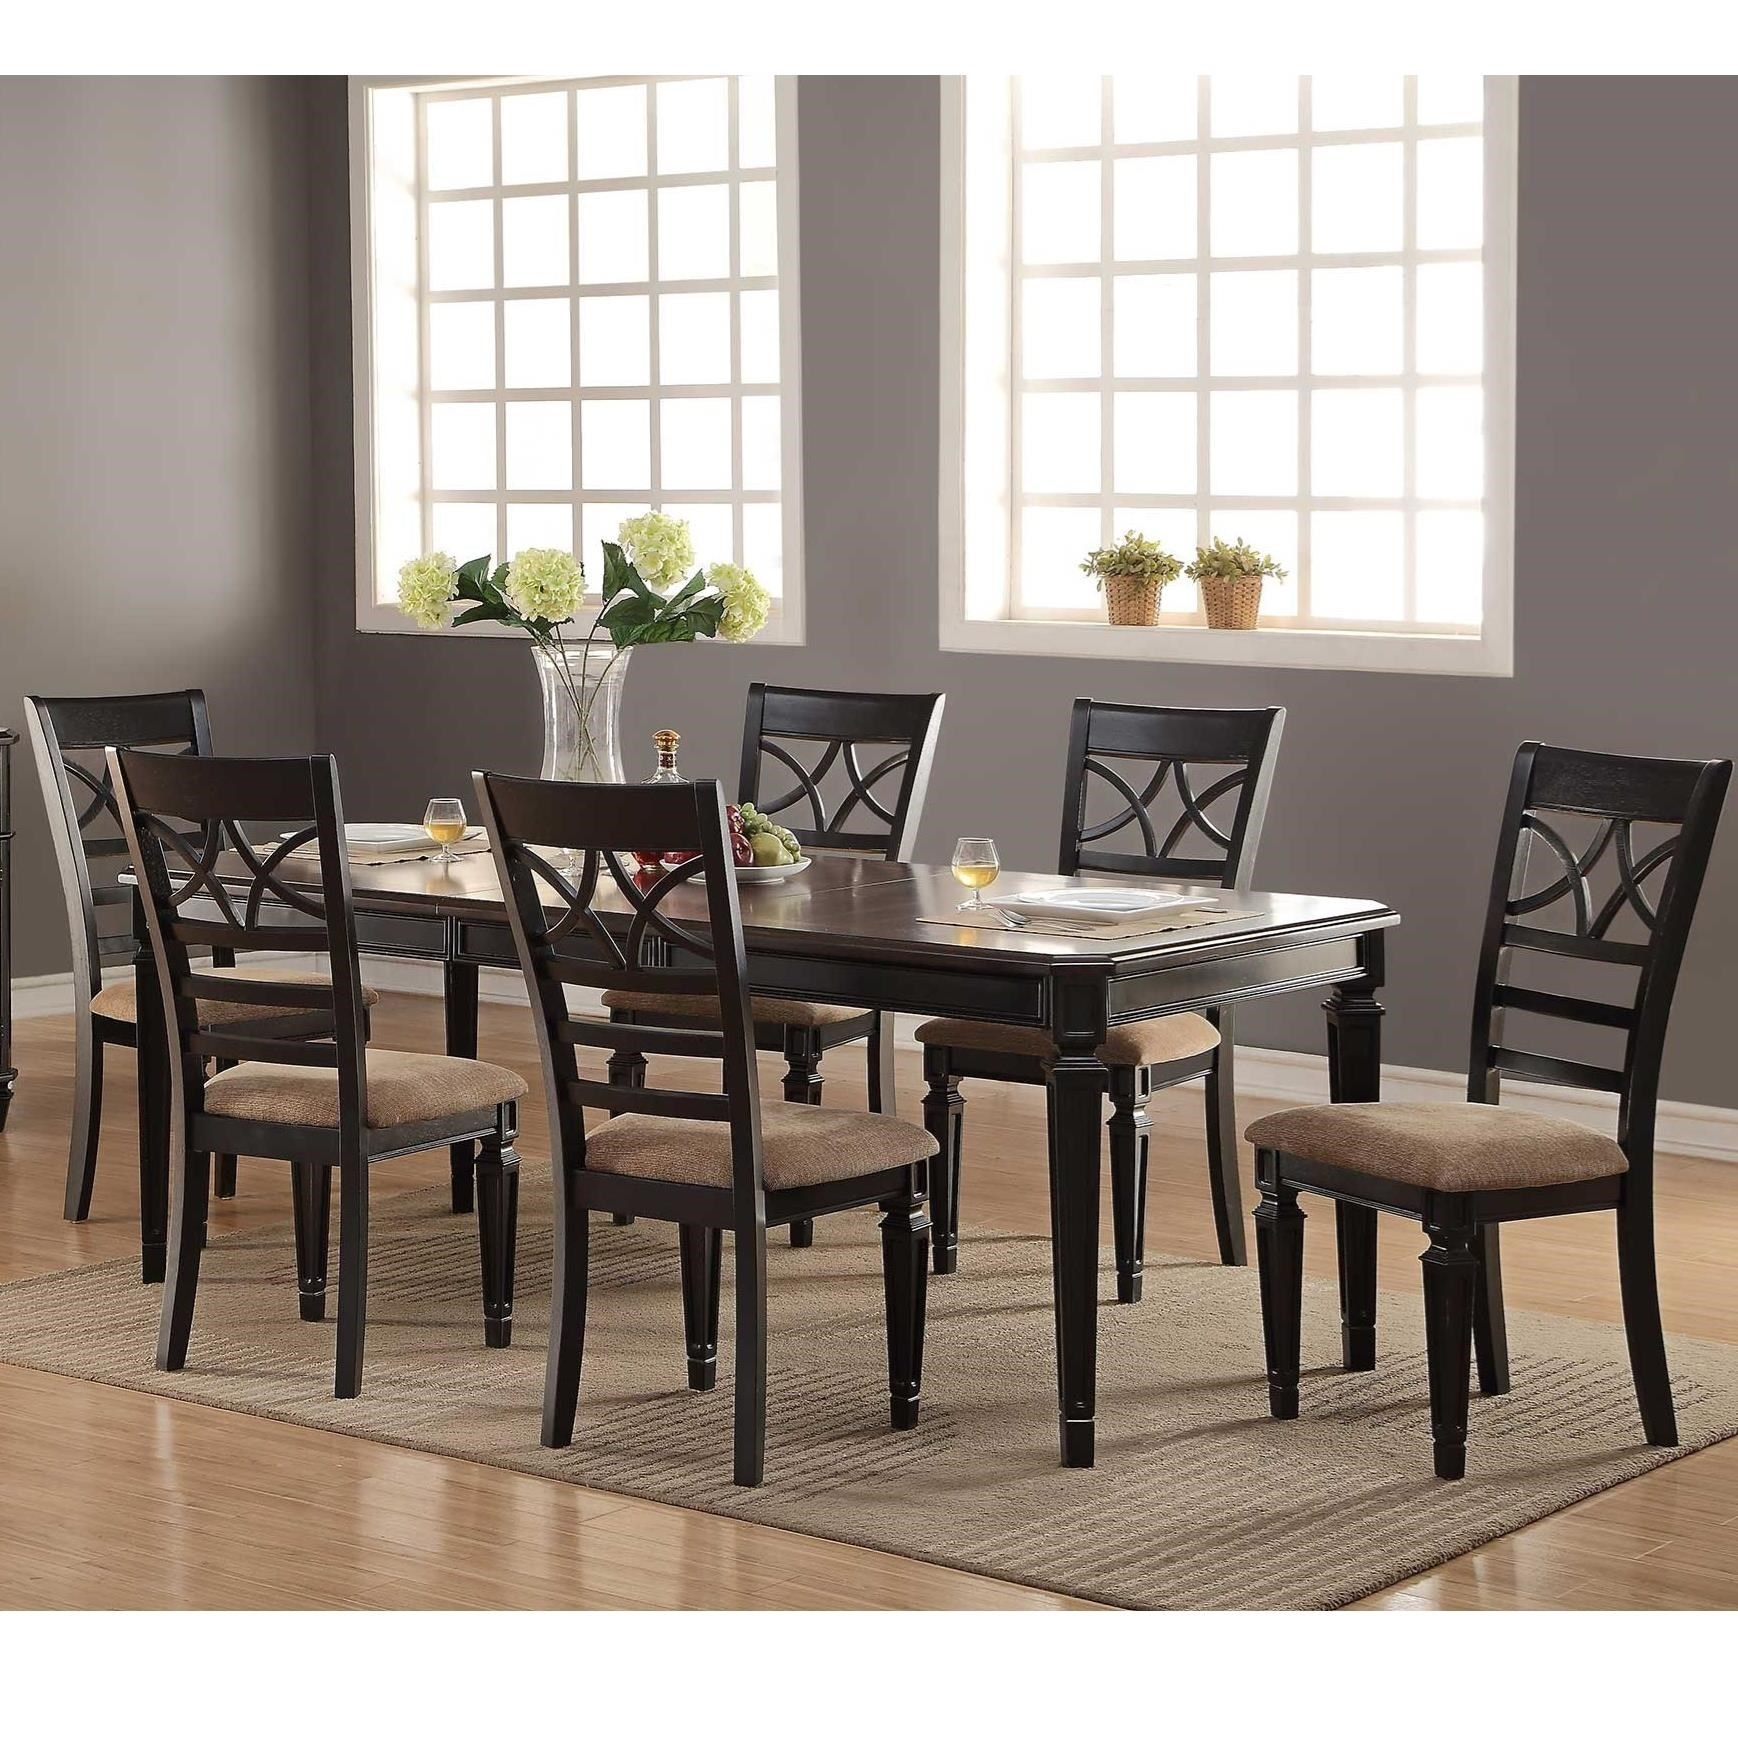 Winners Only Arlington 7 Piece Dining Set With X Back Chairs In Most Recent Parquet 7 Piece Dining Sets (View 7 of 20)